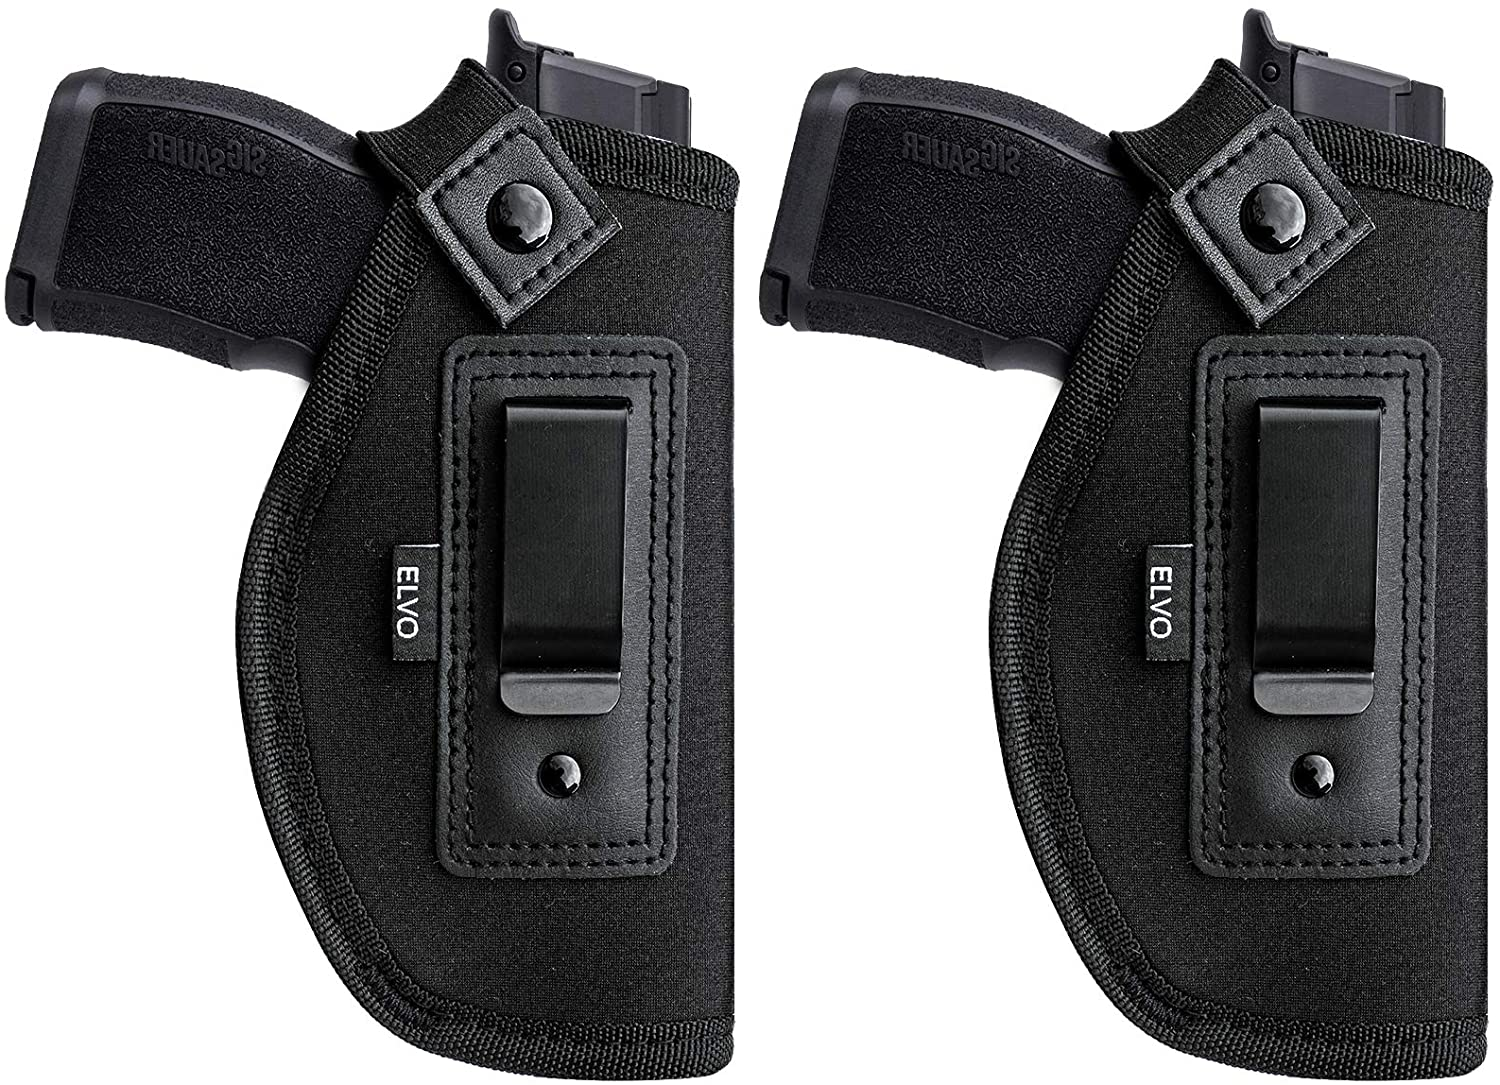 2 Pack Universal IWB Gun Holster for Concealed Carry, Inside The Waistband Pistols Holsters, Fits All Firearms S&W M&P Shield 9/40 Taurus PT111 G2 Sig Sauer 1911 P365 P320 Glock 17 19 26 27 42 43…